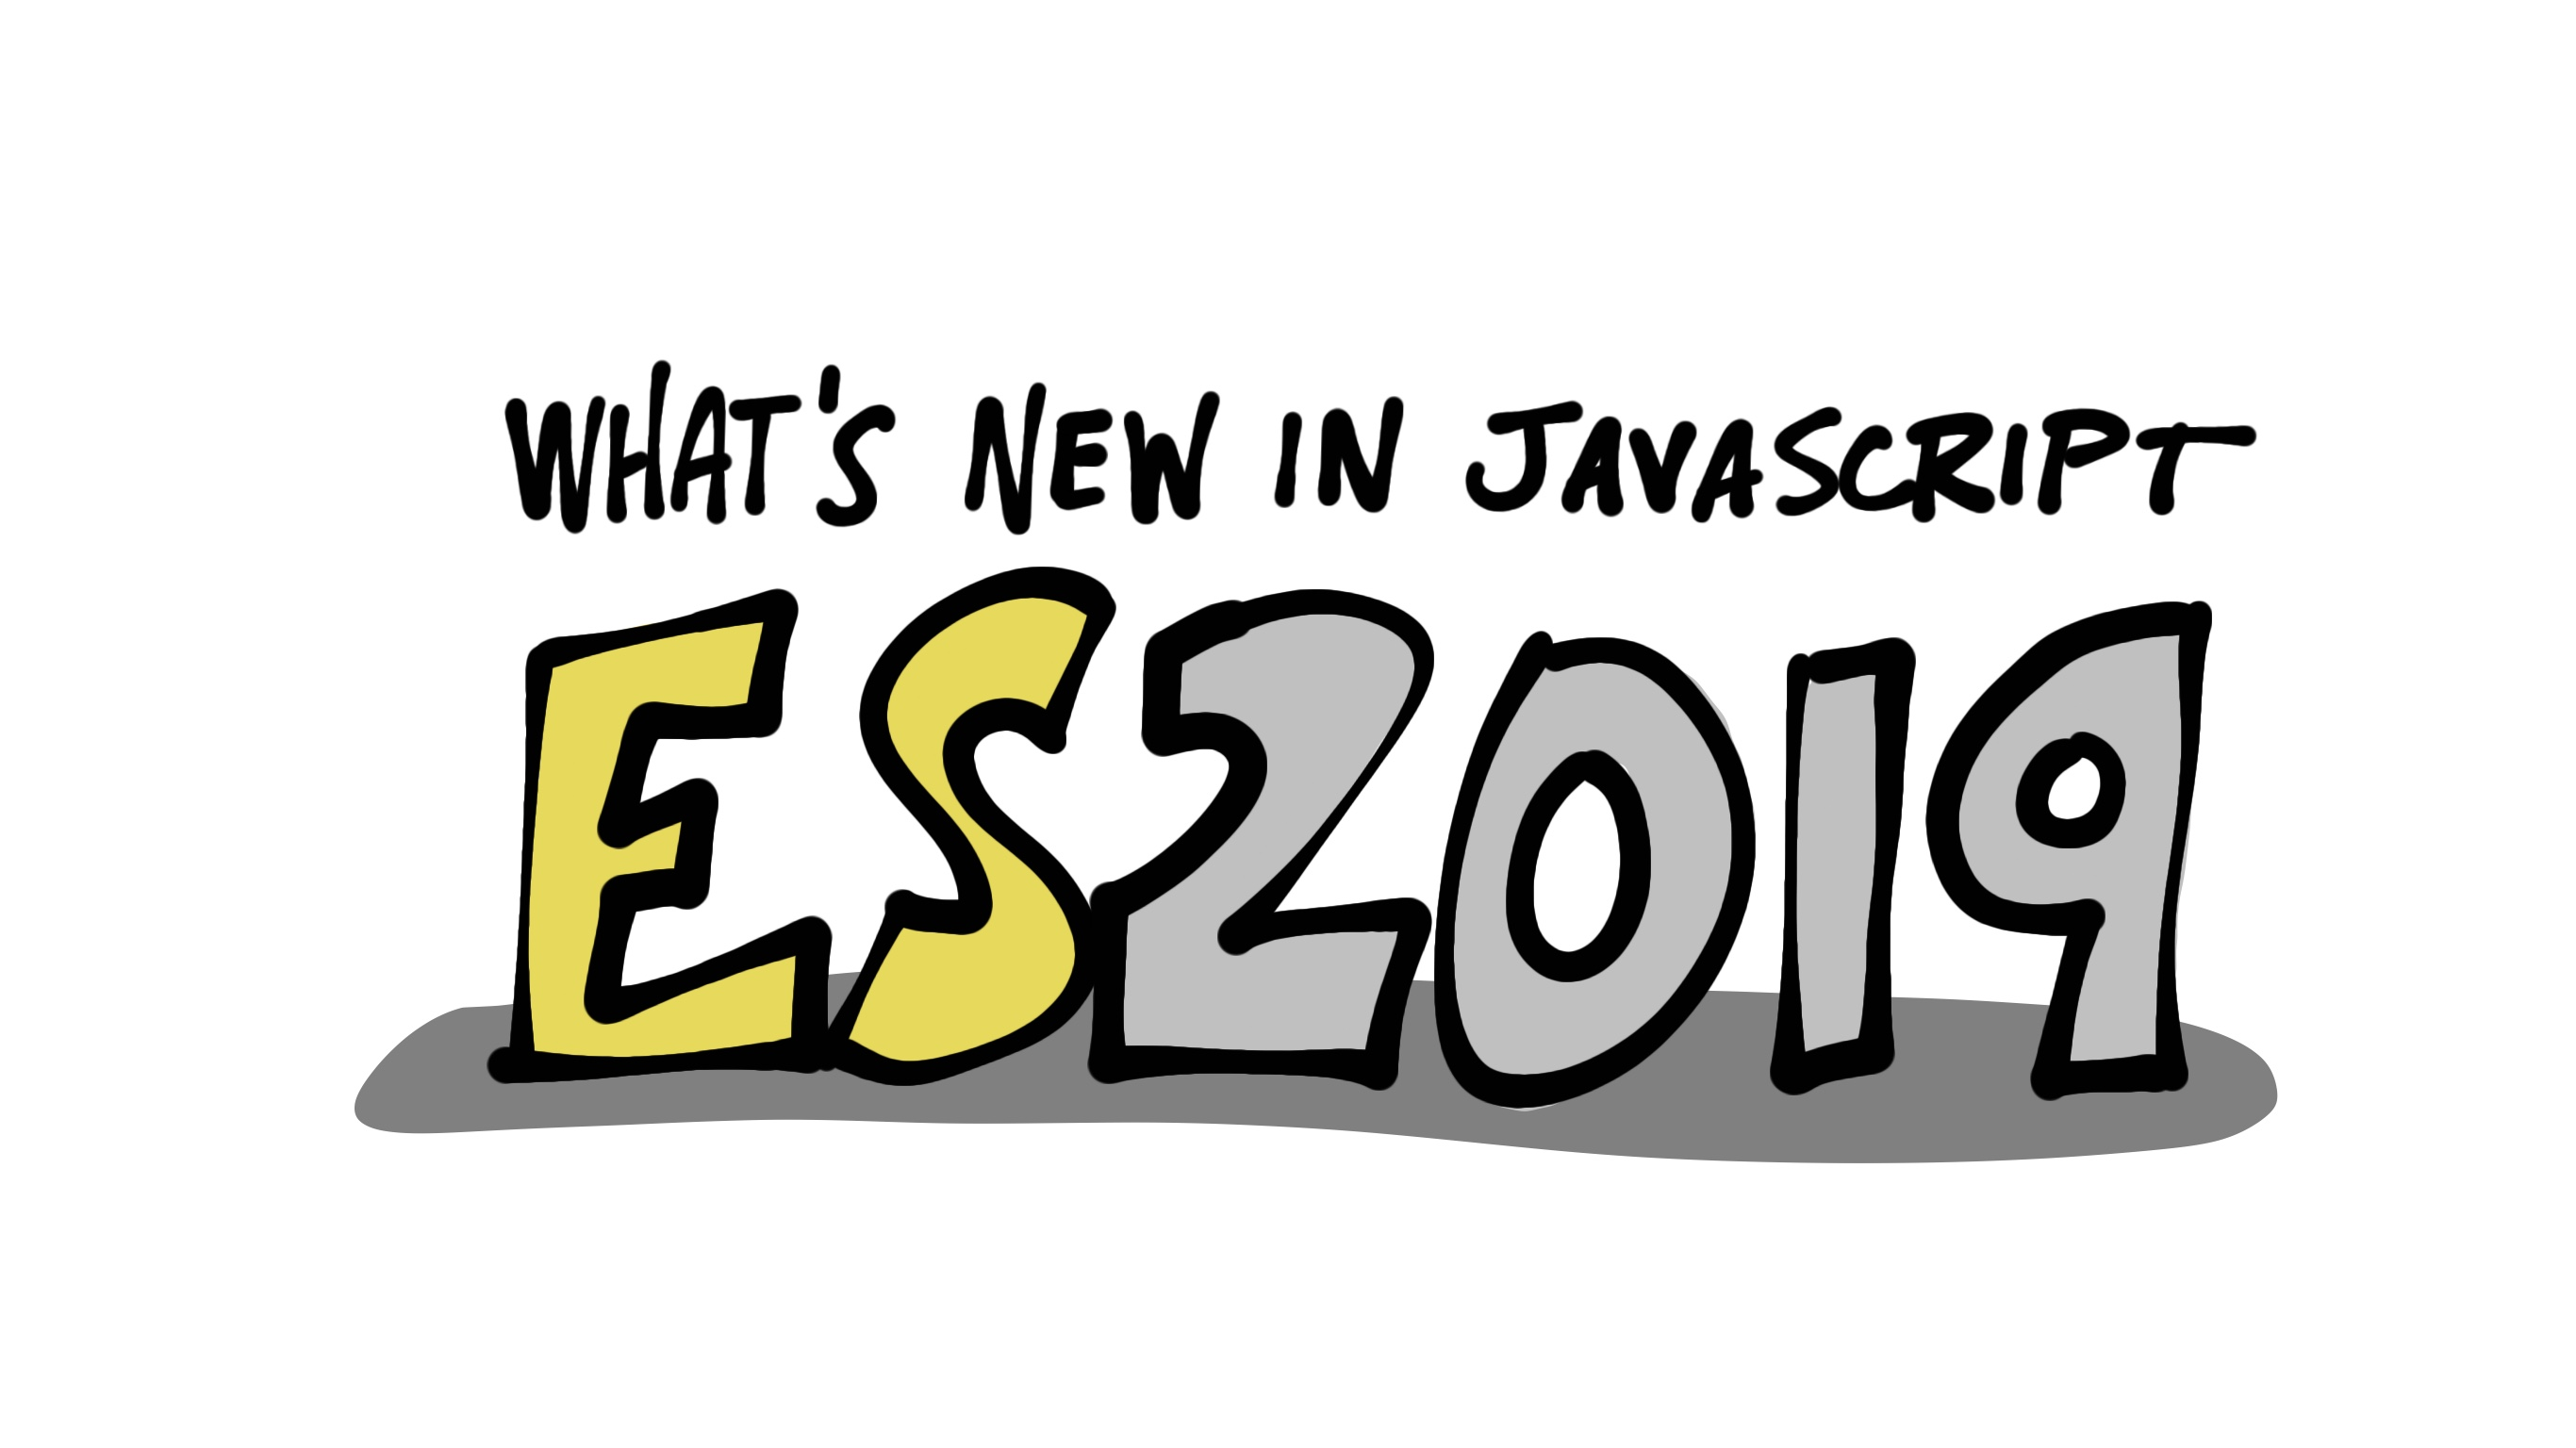 What's new in JavaScript for 2019!